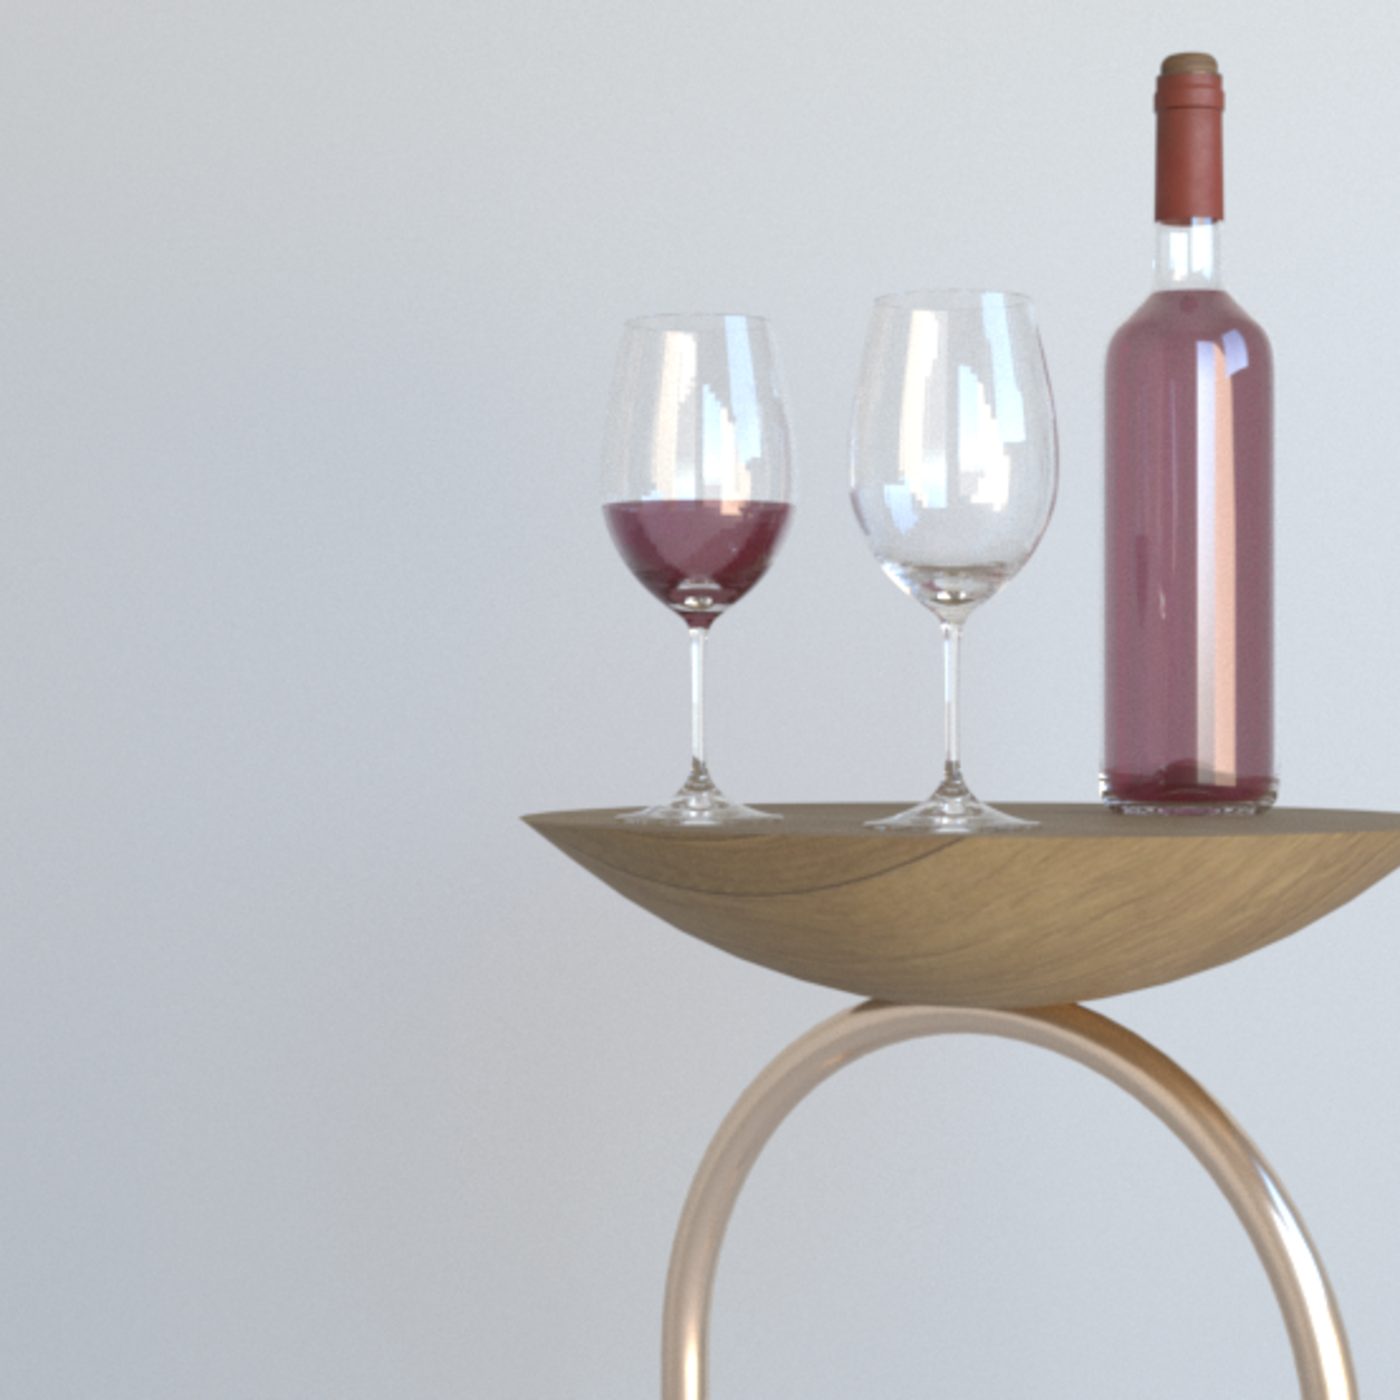 FREE - Giro - Viccarbe - table